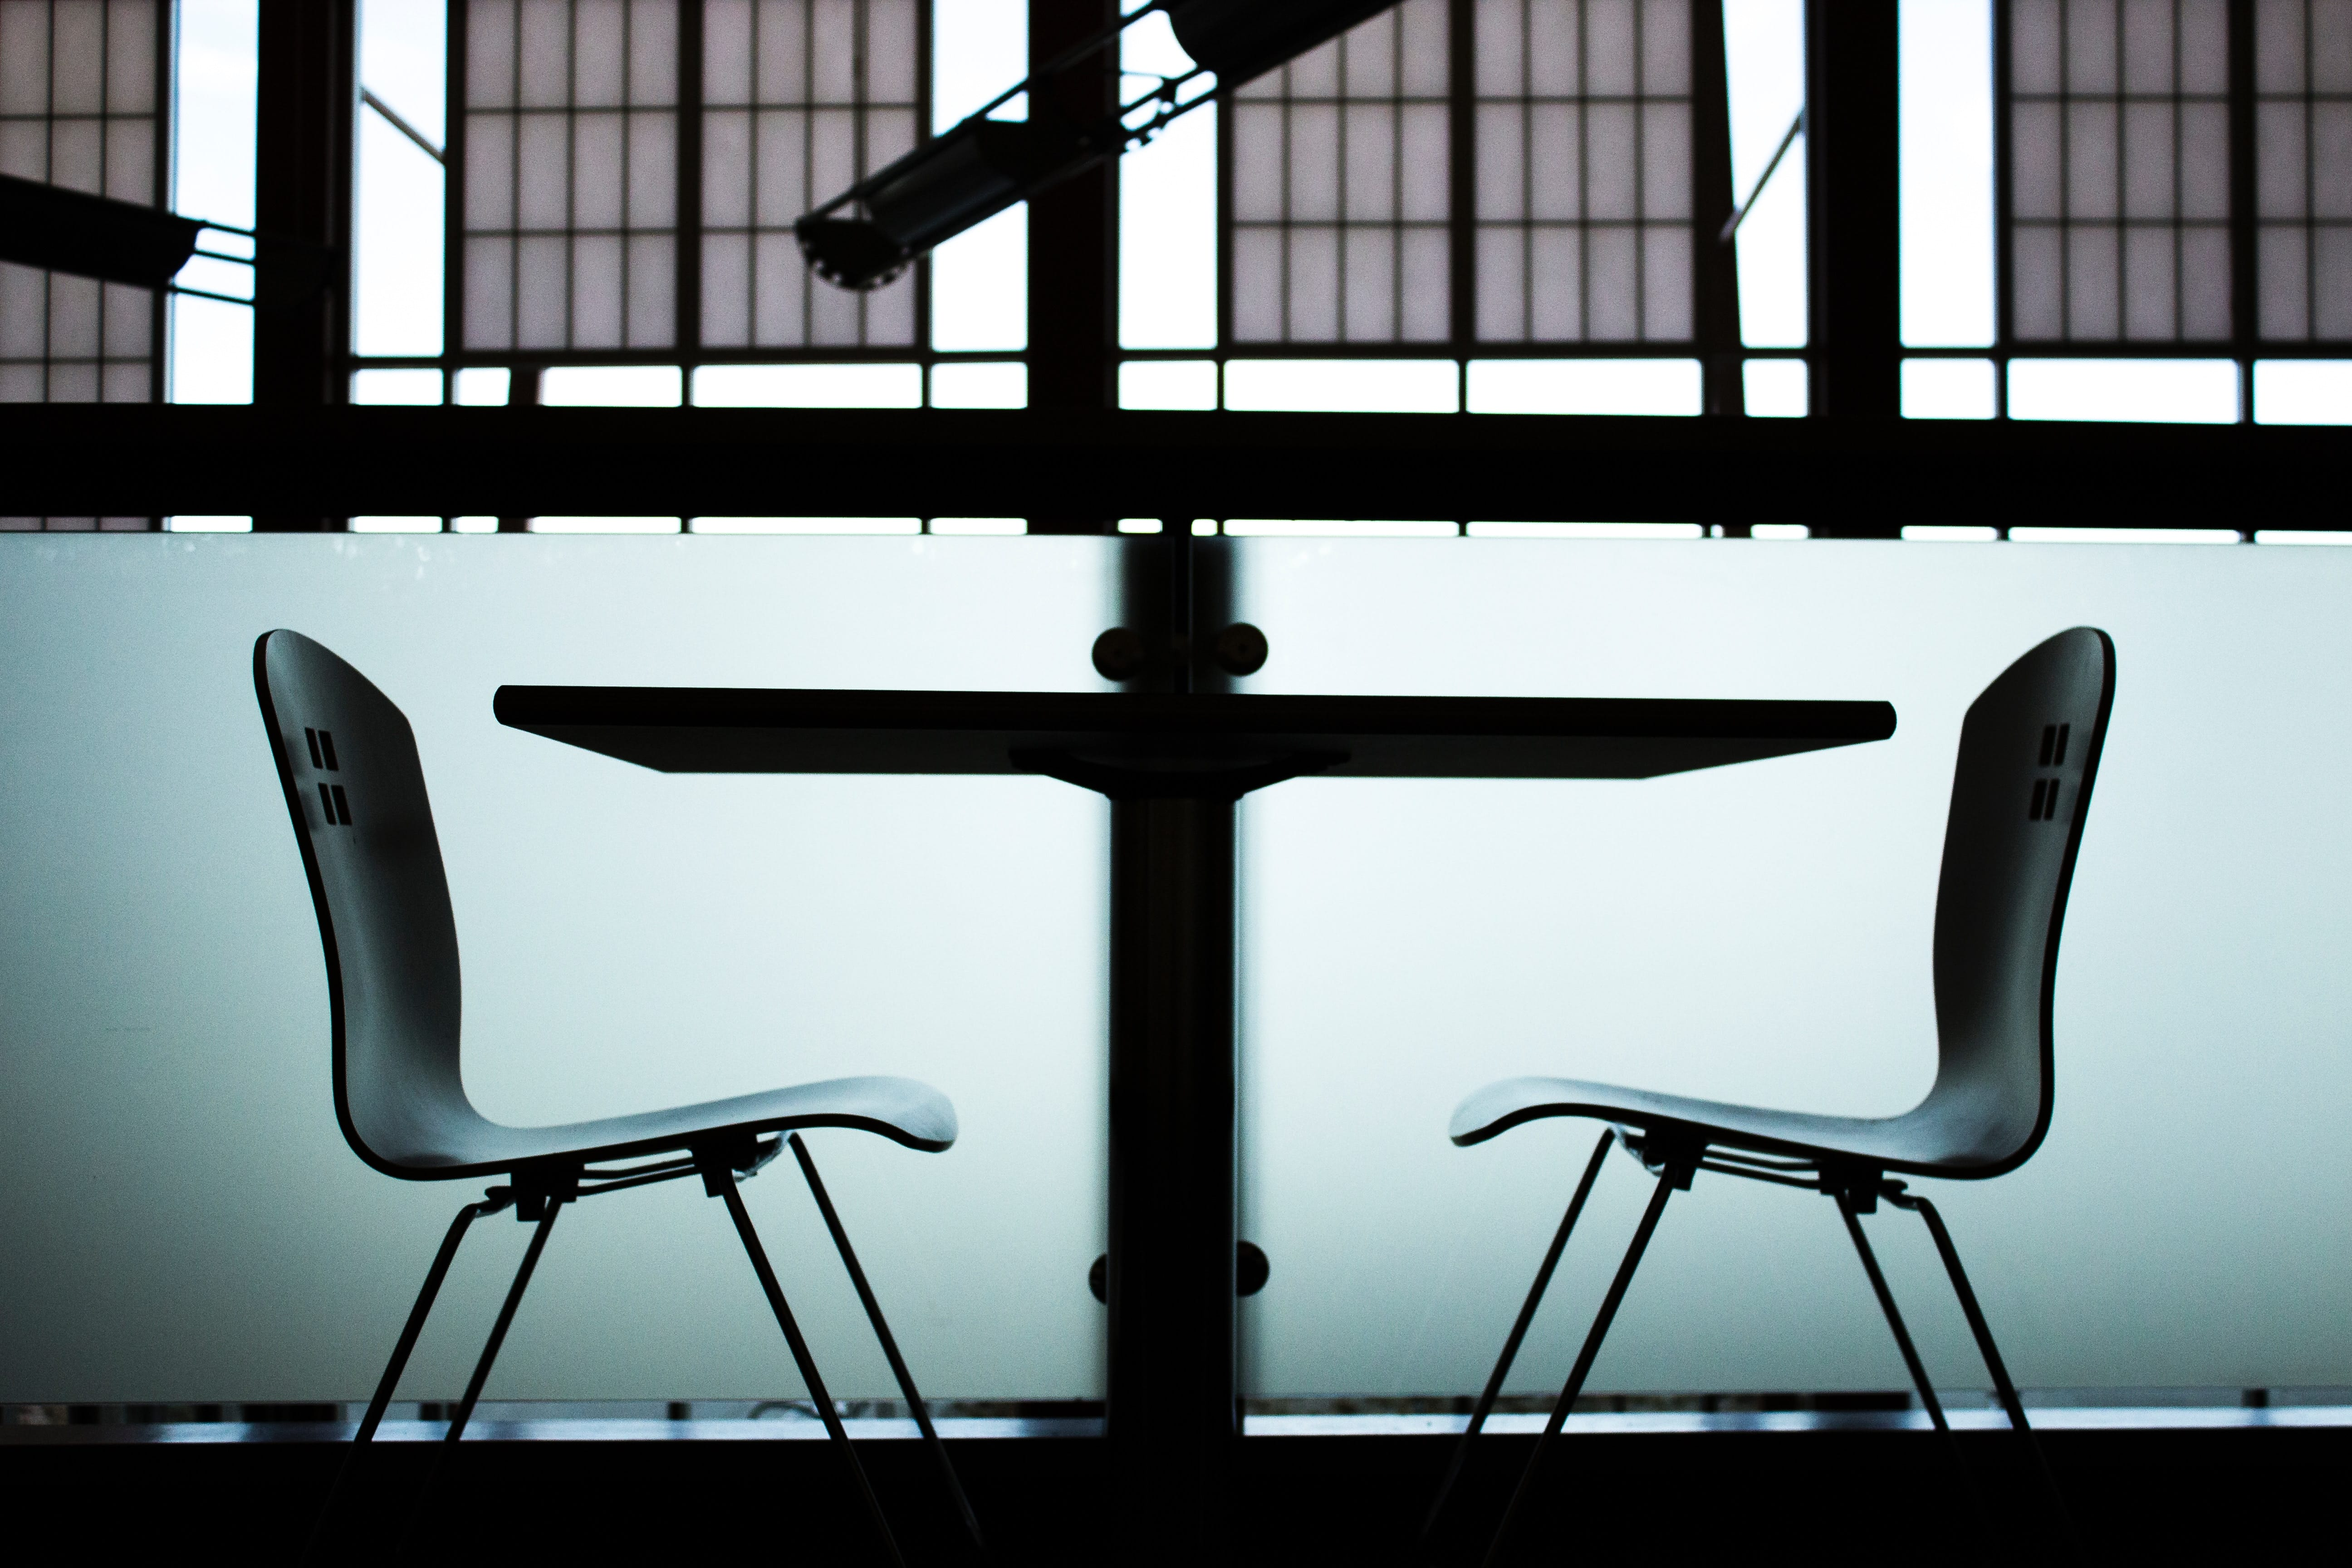 BlogPost 7459343333 Engaging an Executive Search Firm? 4 Helpful Questions to Ask First